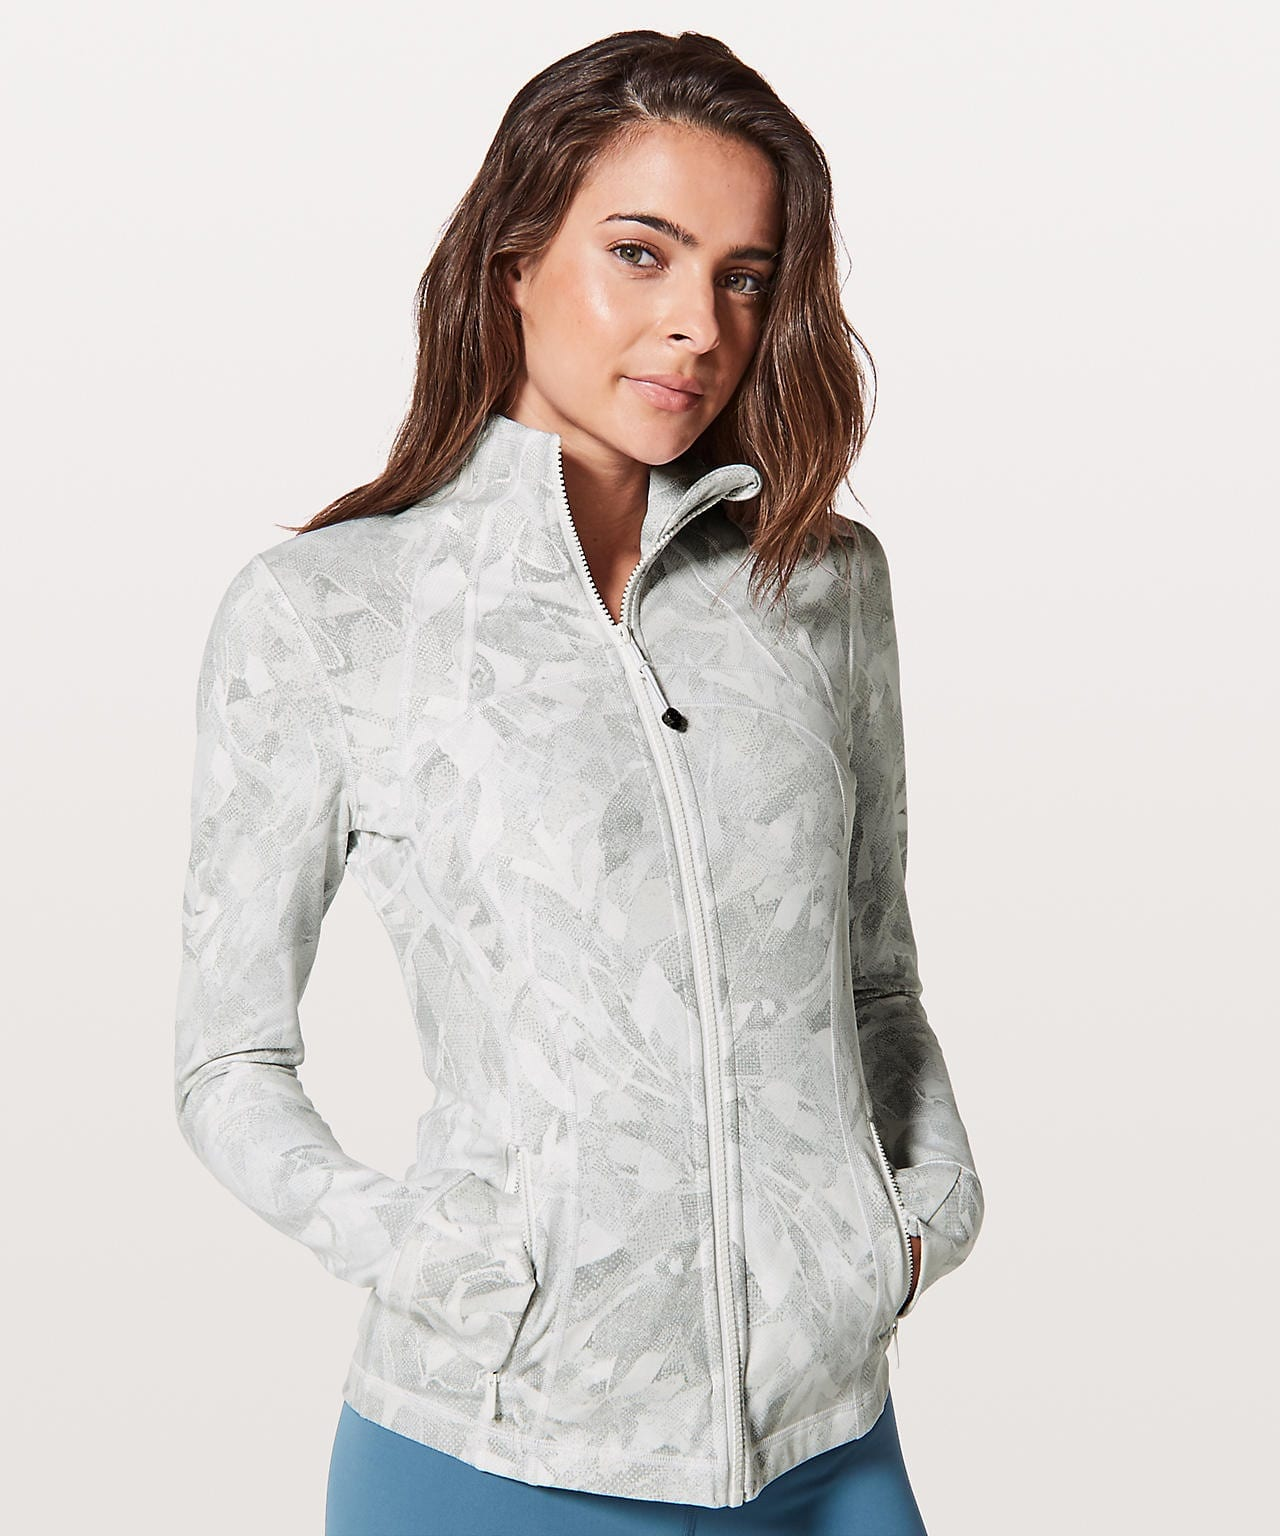 Define Jacket Jasmine White Multi